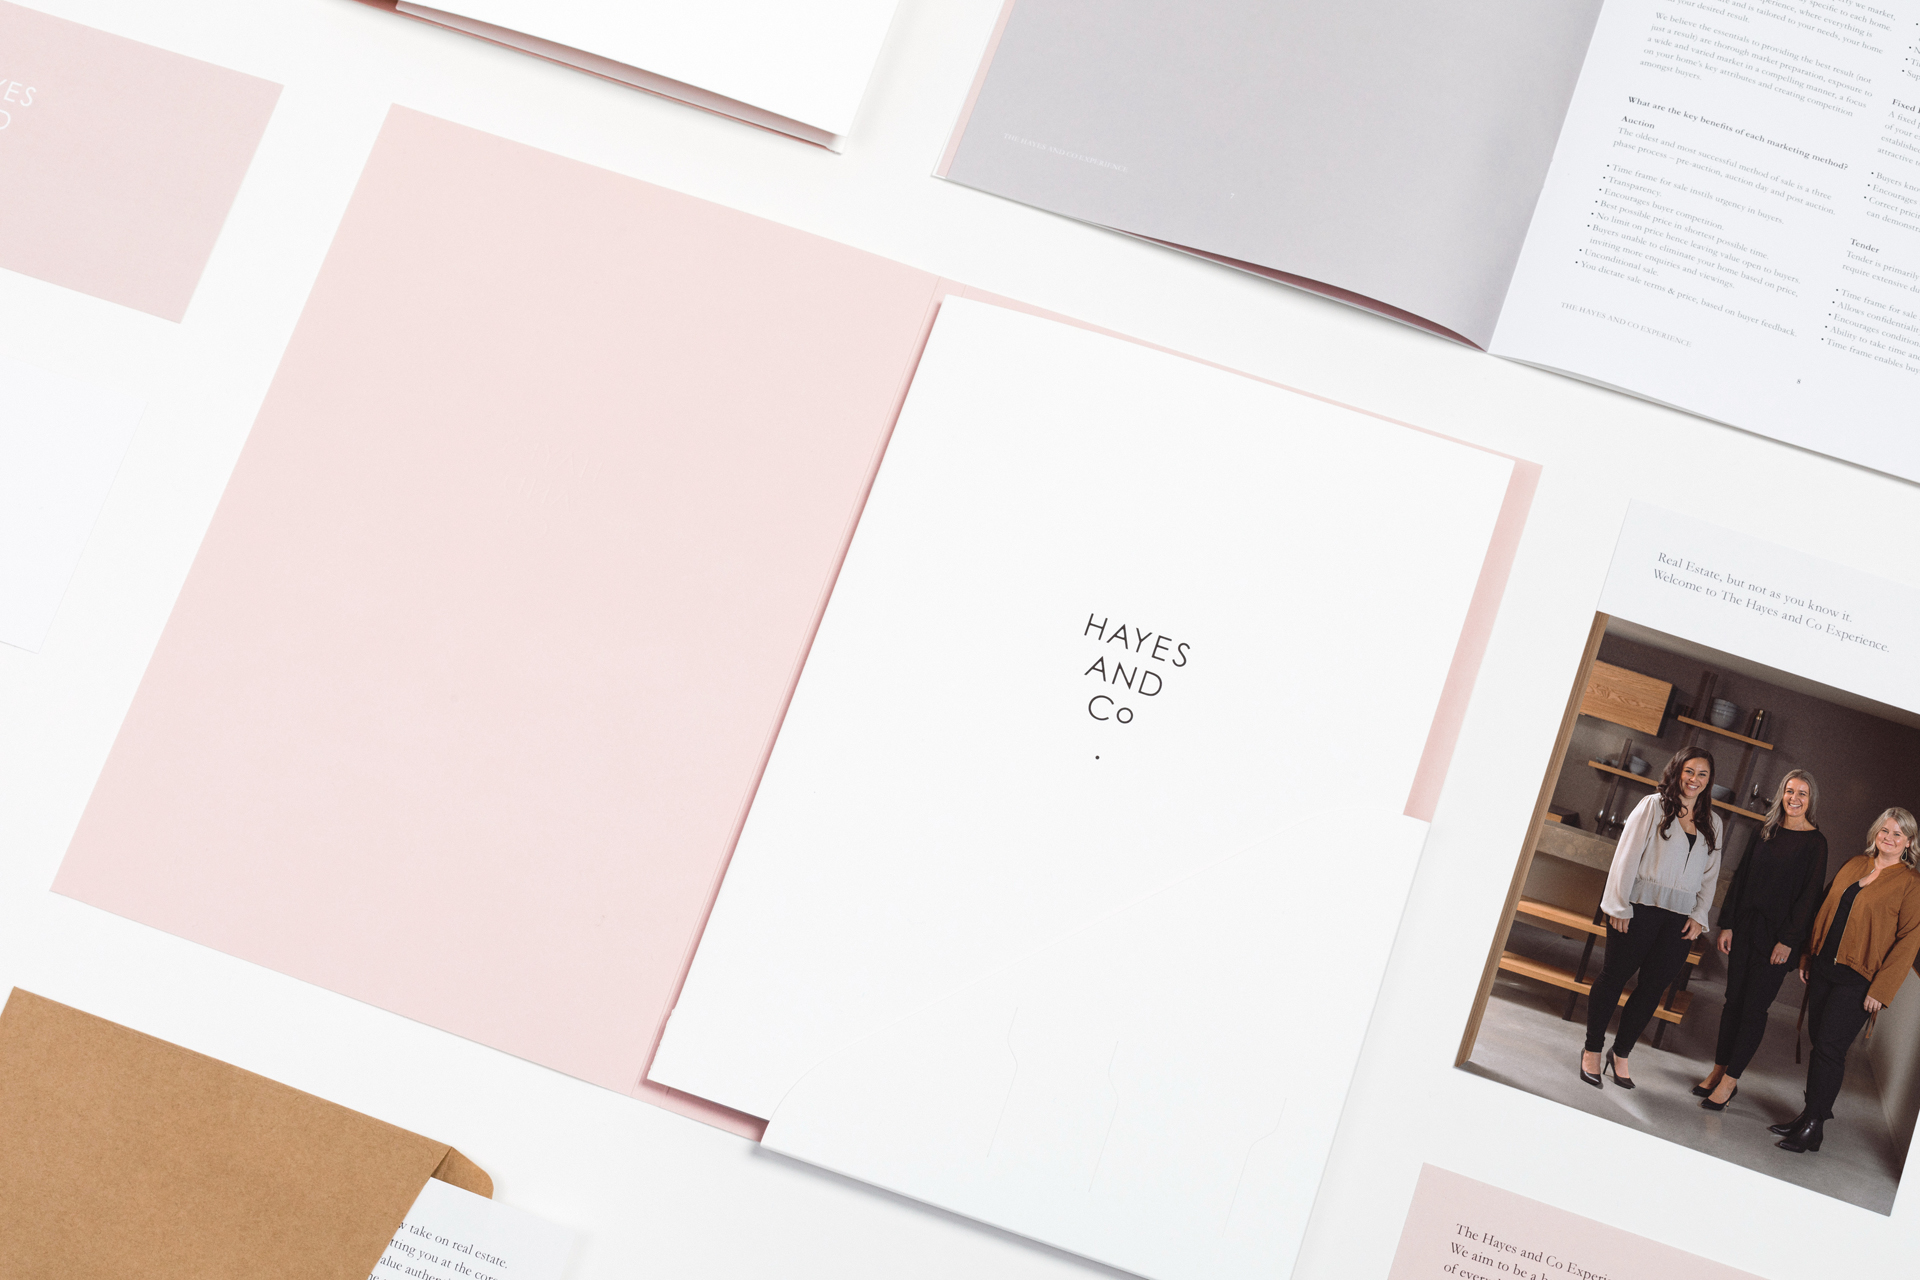 Hunter-Studio_Hayes-and-Co_Brand-Identity_Design_New-Zealand04.jpg